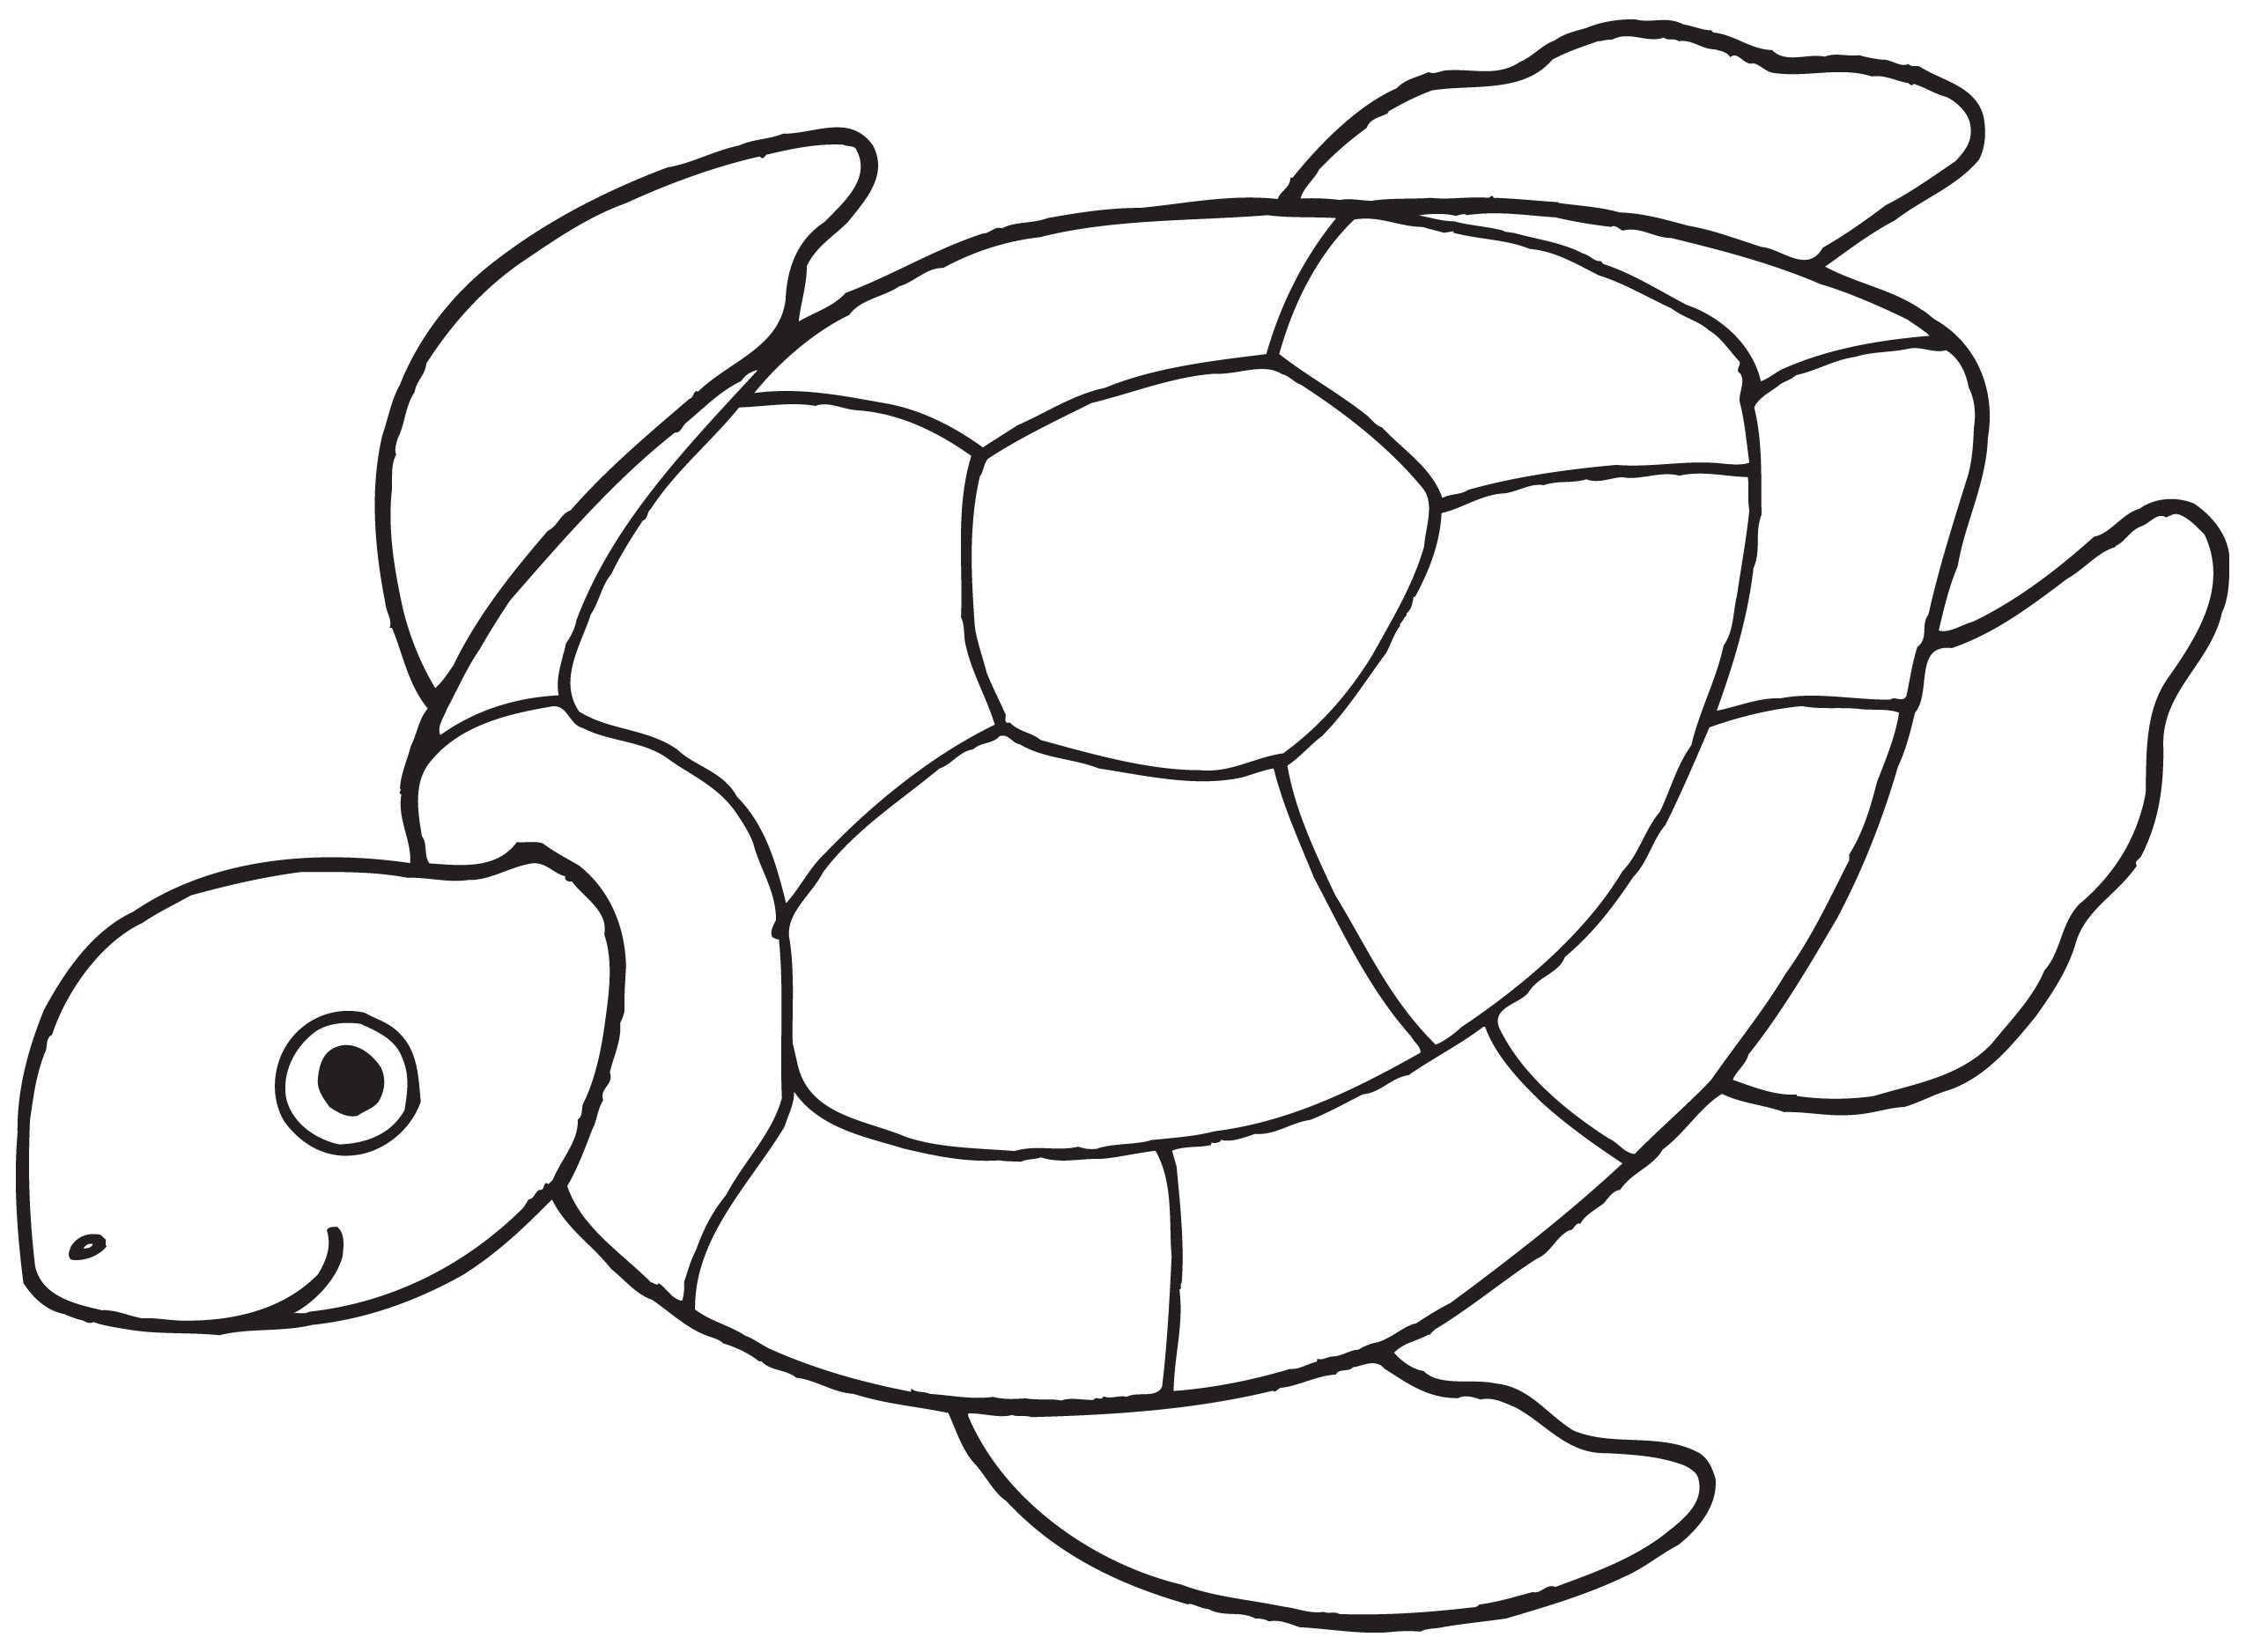 Tortoise clipart coloring. Yertle the turtle pages